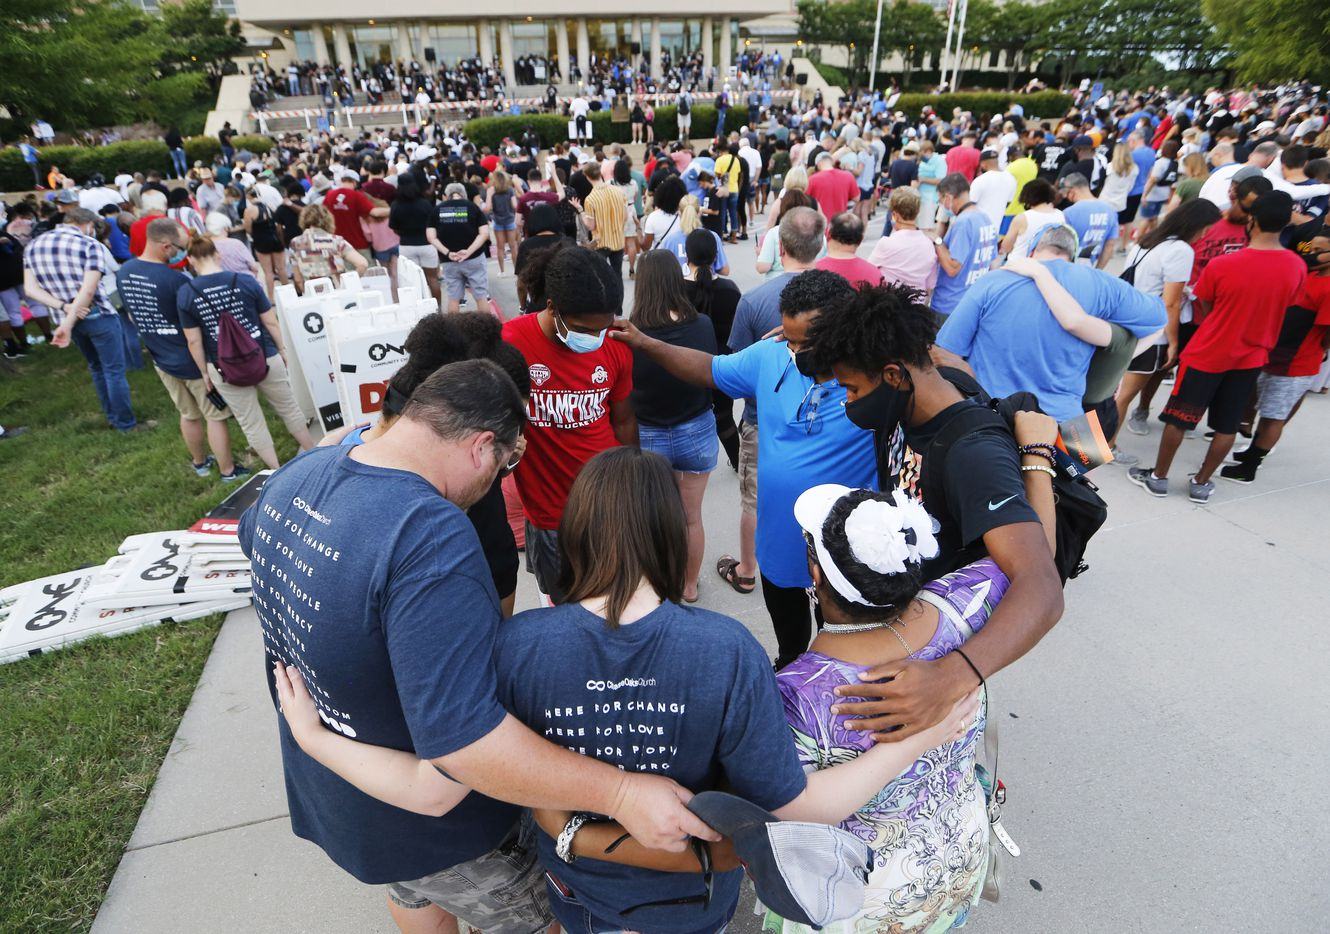 """People pray as groups or individually during """"A Gathering of Our Collin County Churches,"""" at the Collin County Courthouse in McKinney, Texas on Thursday, June 4, 2020. Churches in Collin county joined to spread a message of unity and love for justice and thoughts on racism."""